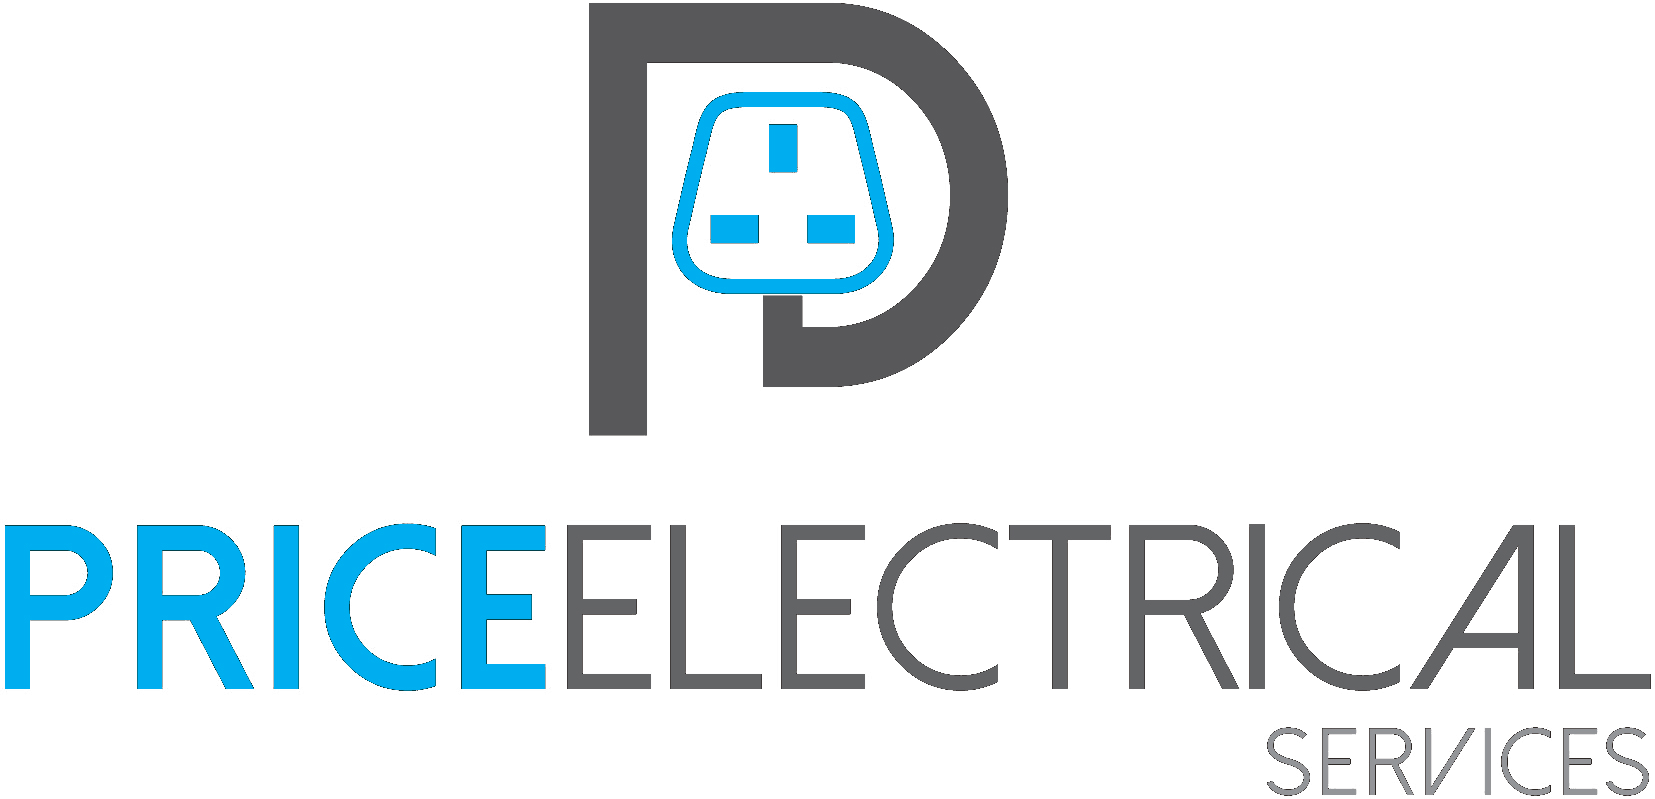 Price Electrical